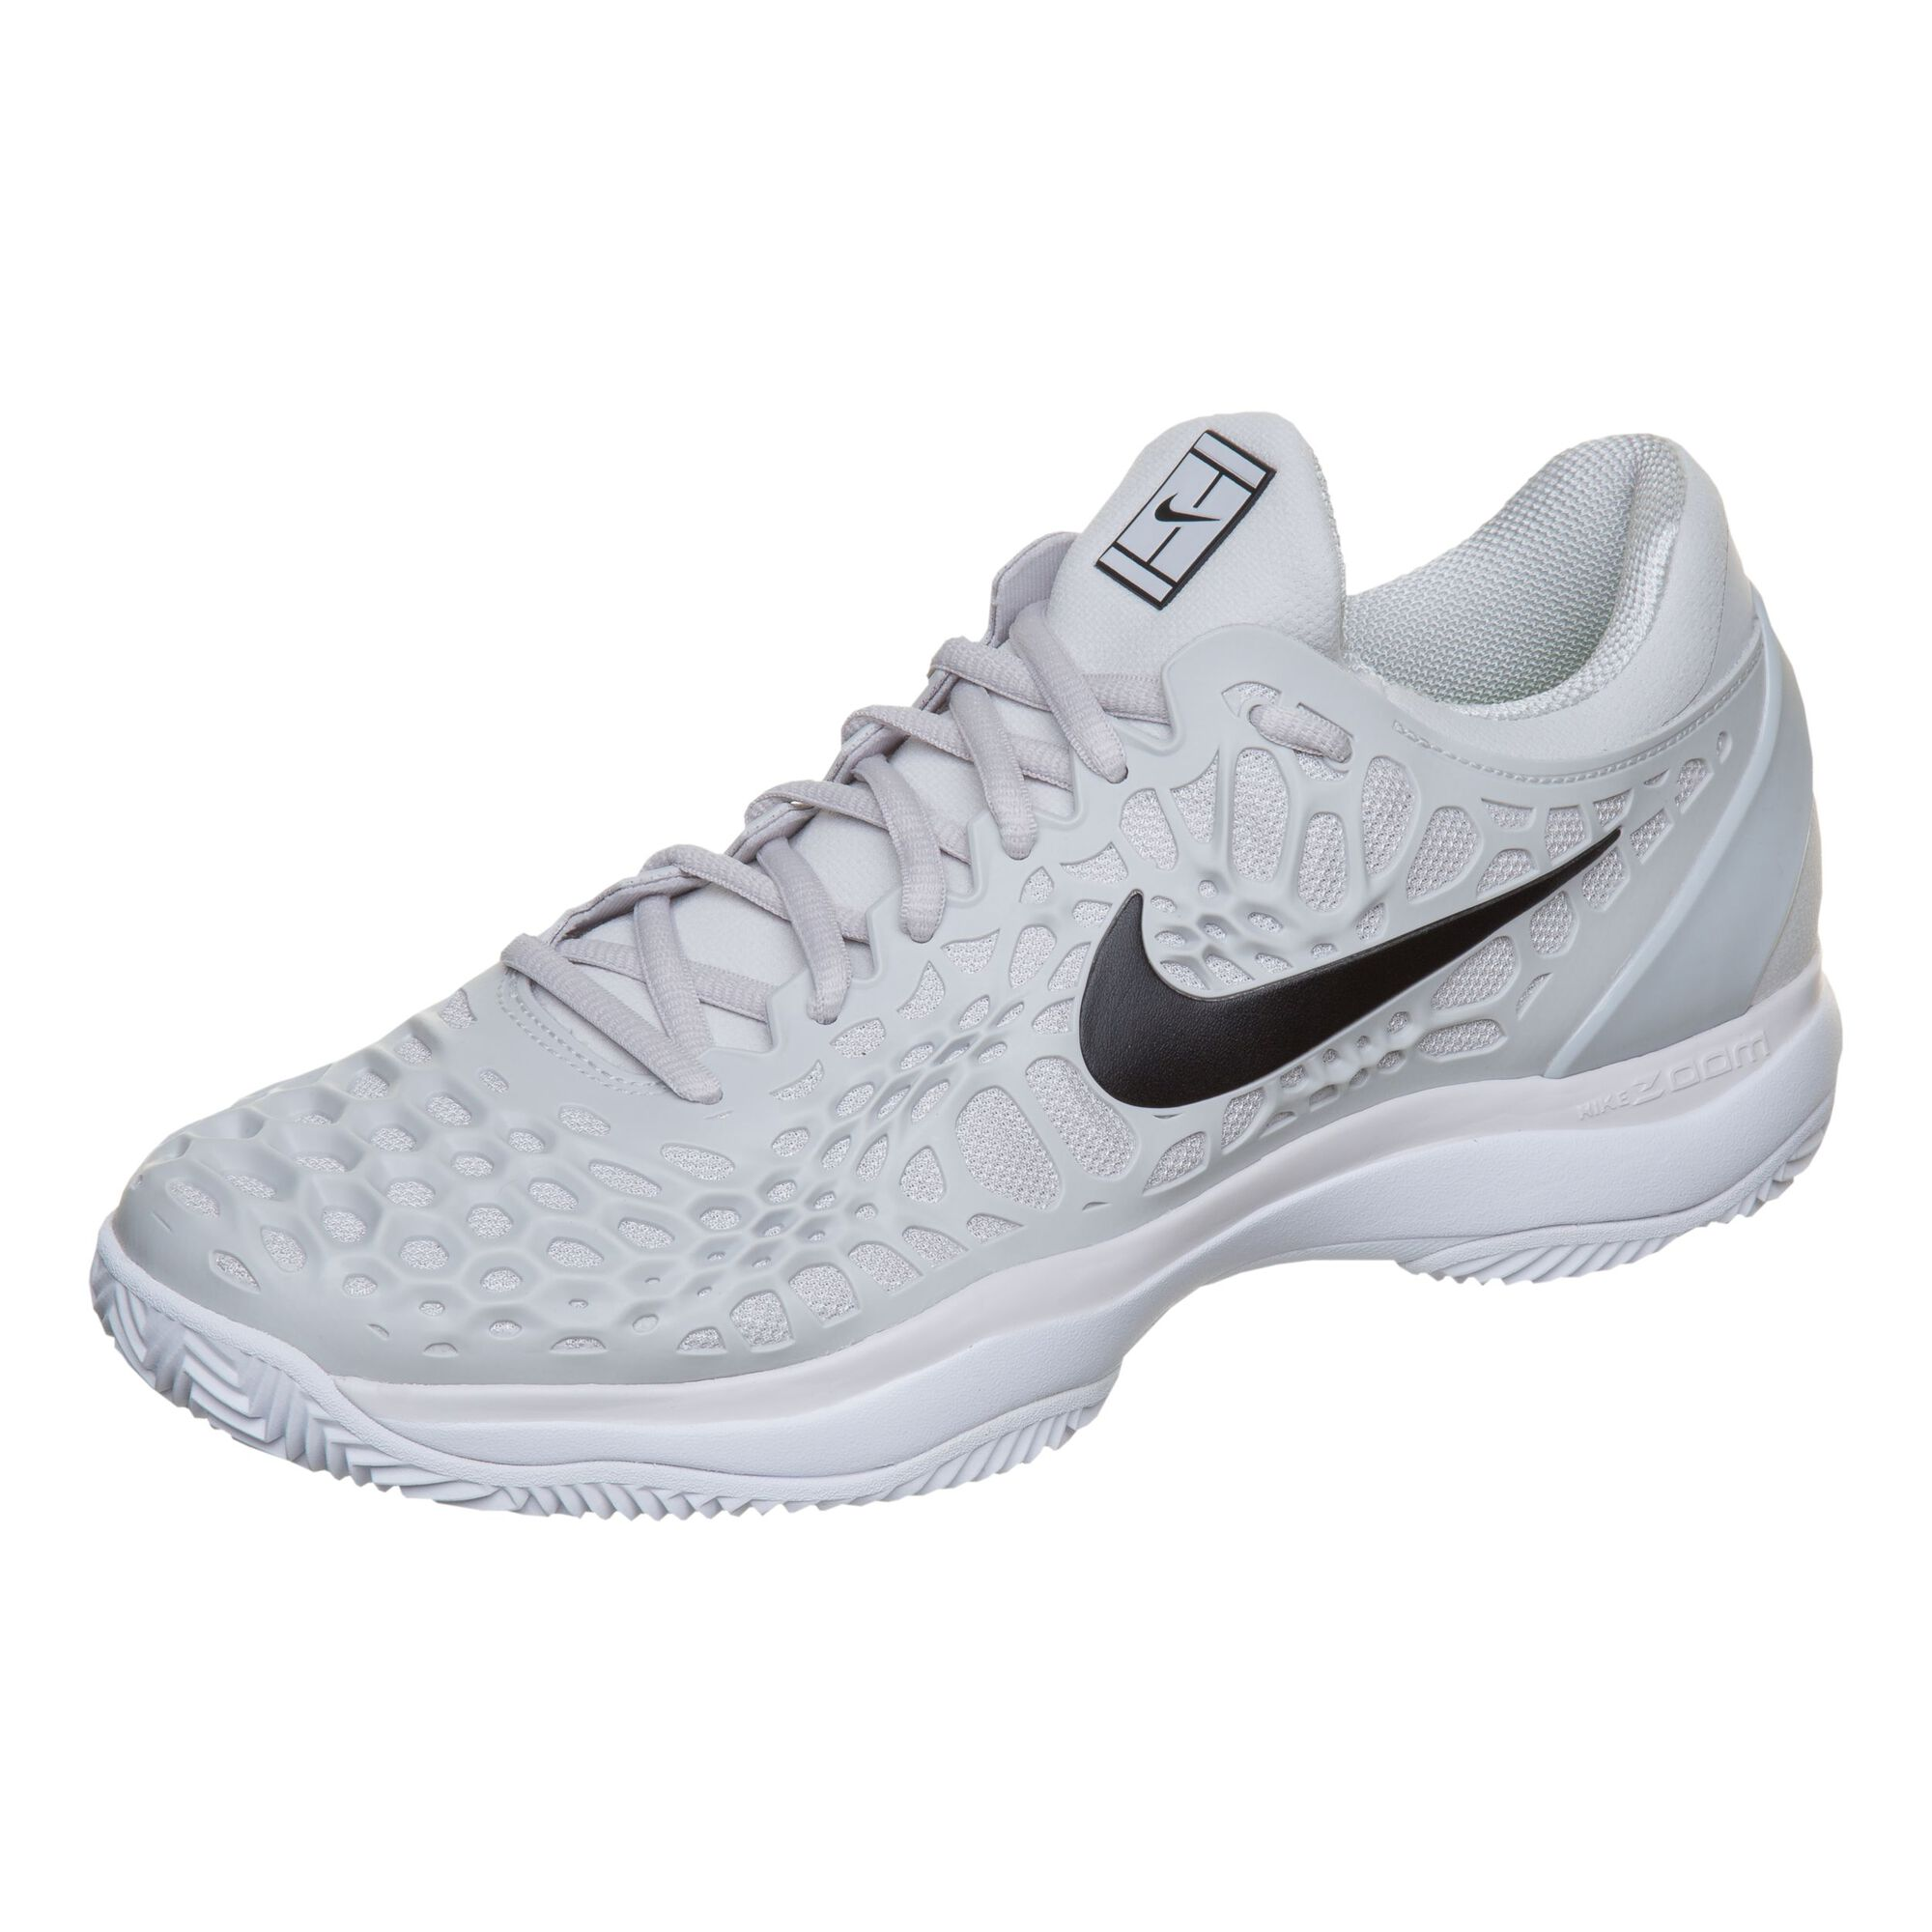 reputable site eb509 bbdbe Nike Zoom Cage 3 Clay Chaussure Terre Battue Hommes - Gris Clair ...